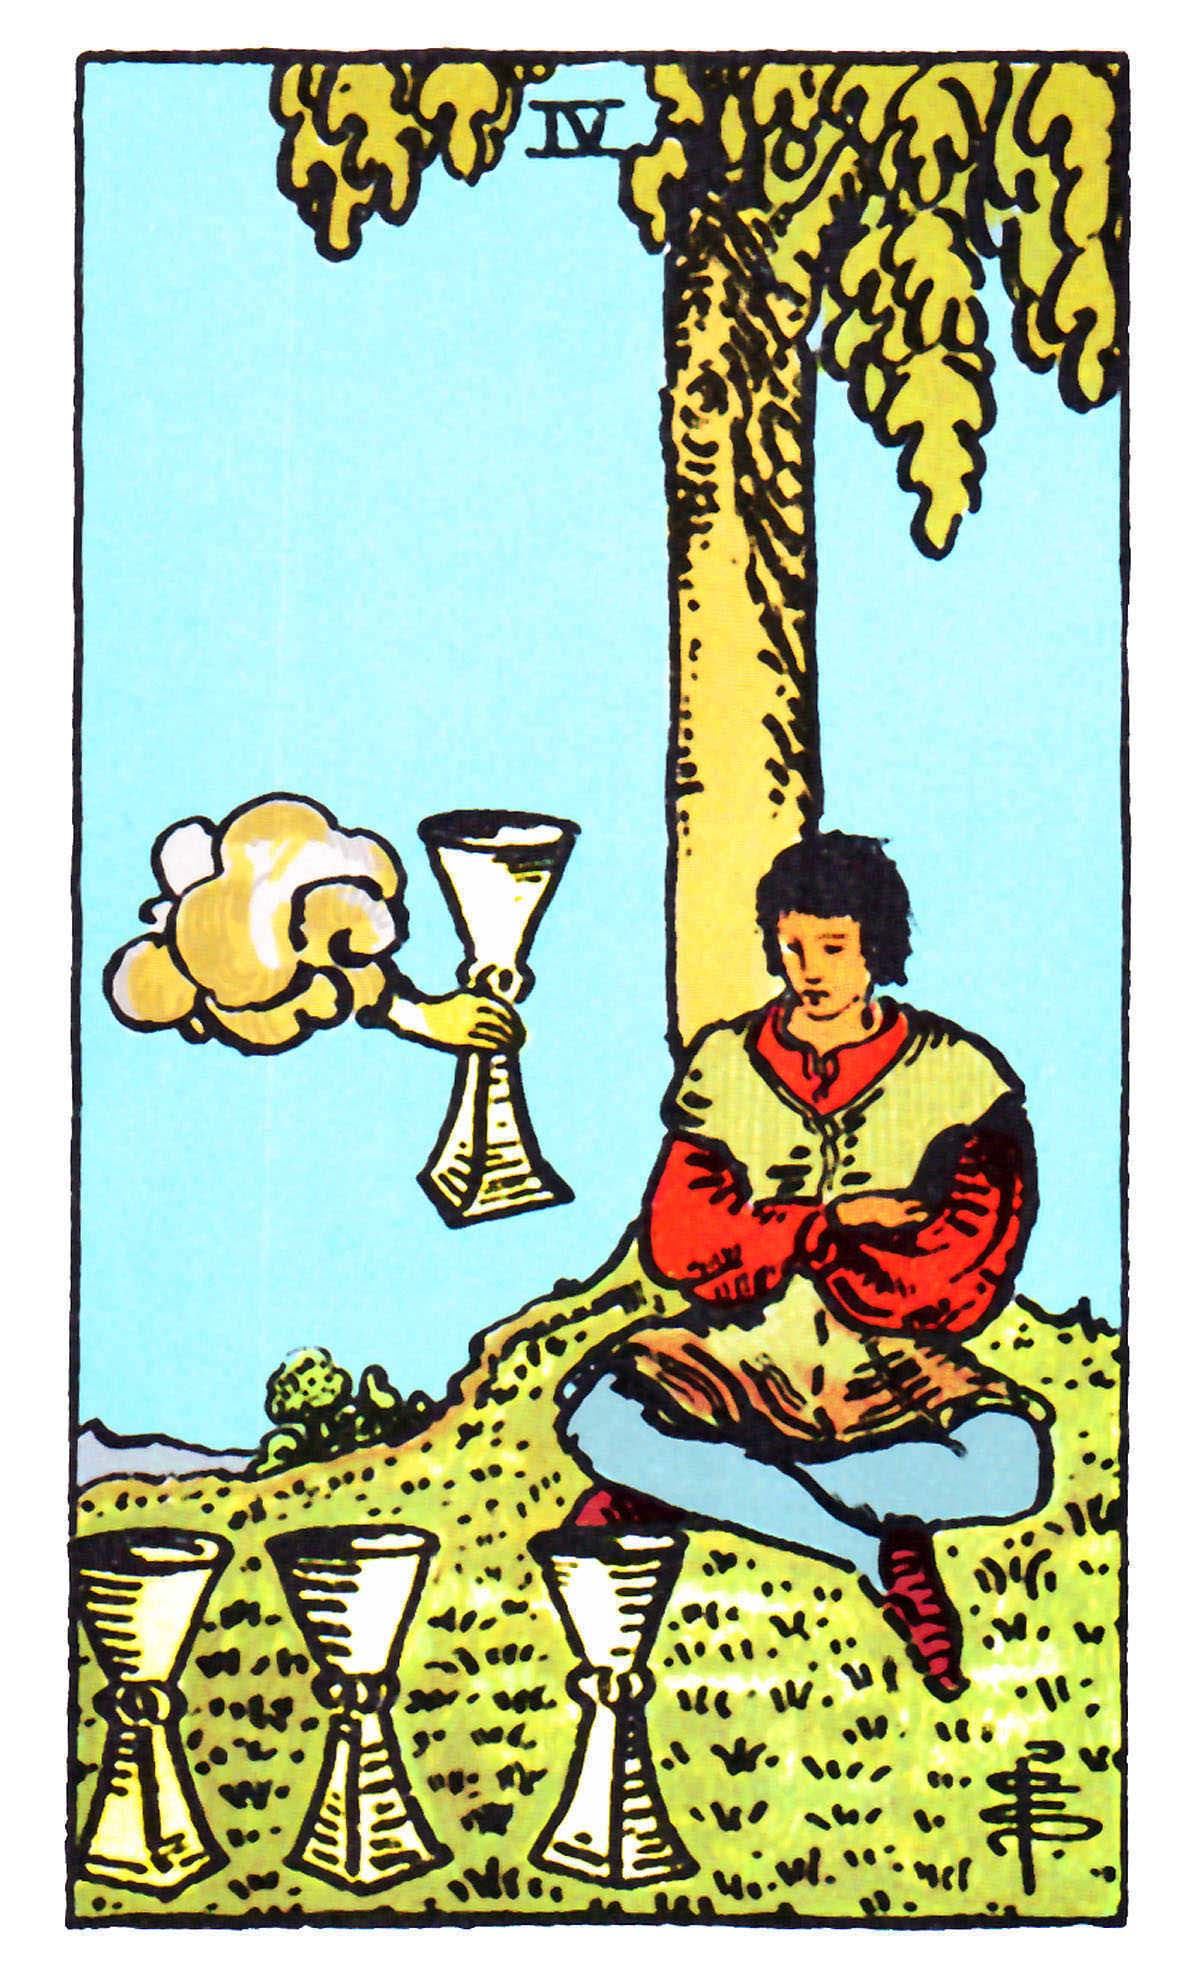 3 of cups tarot card meaning